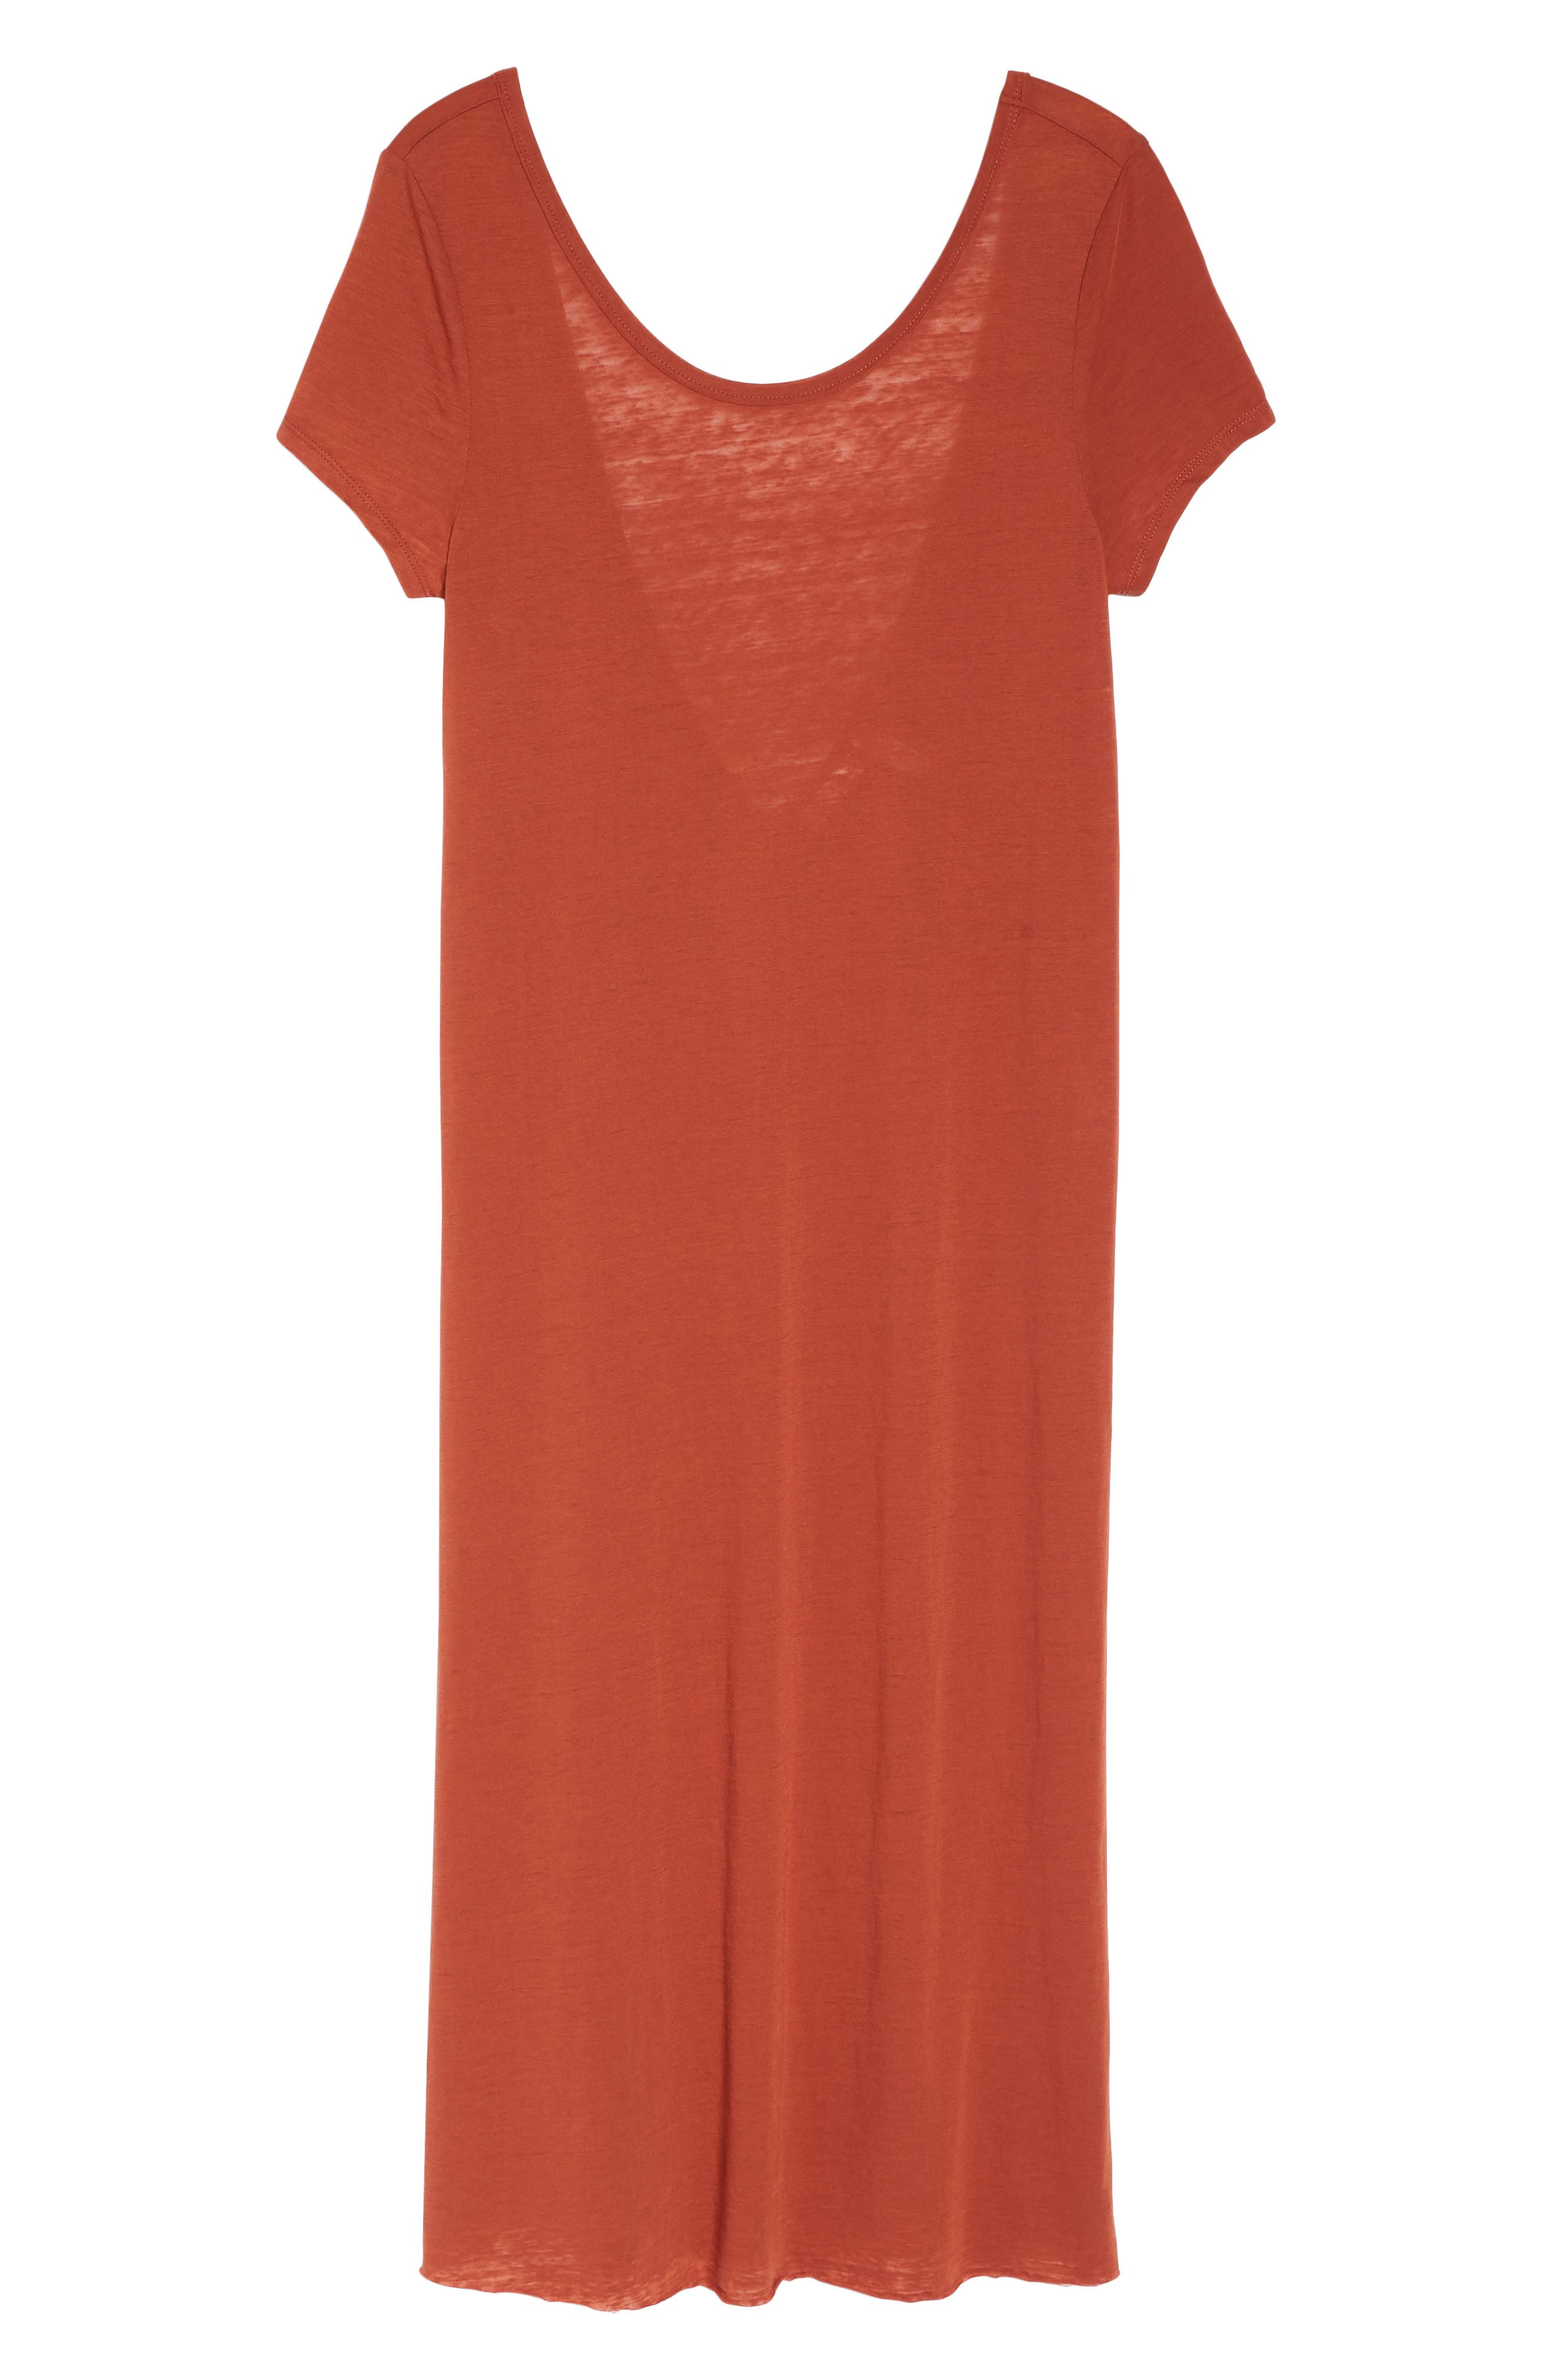 Easy Tee Burnout Cover-Up Dress,                             Alternate thumbnail 6, color,                             RUST PICANTE